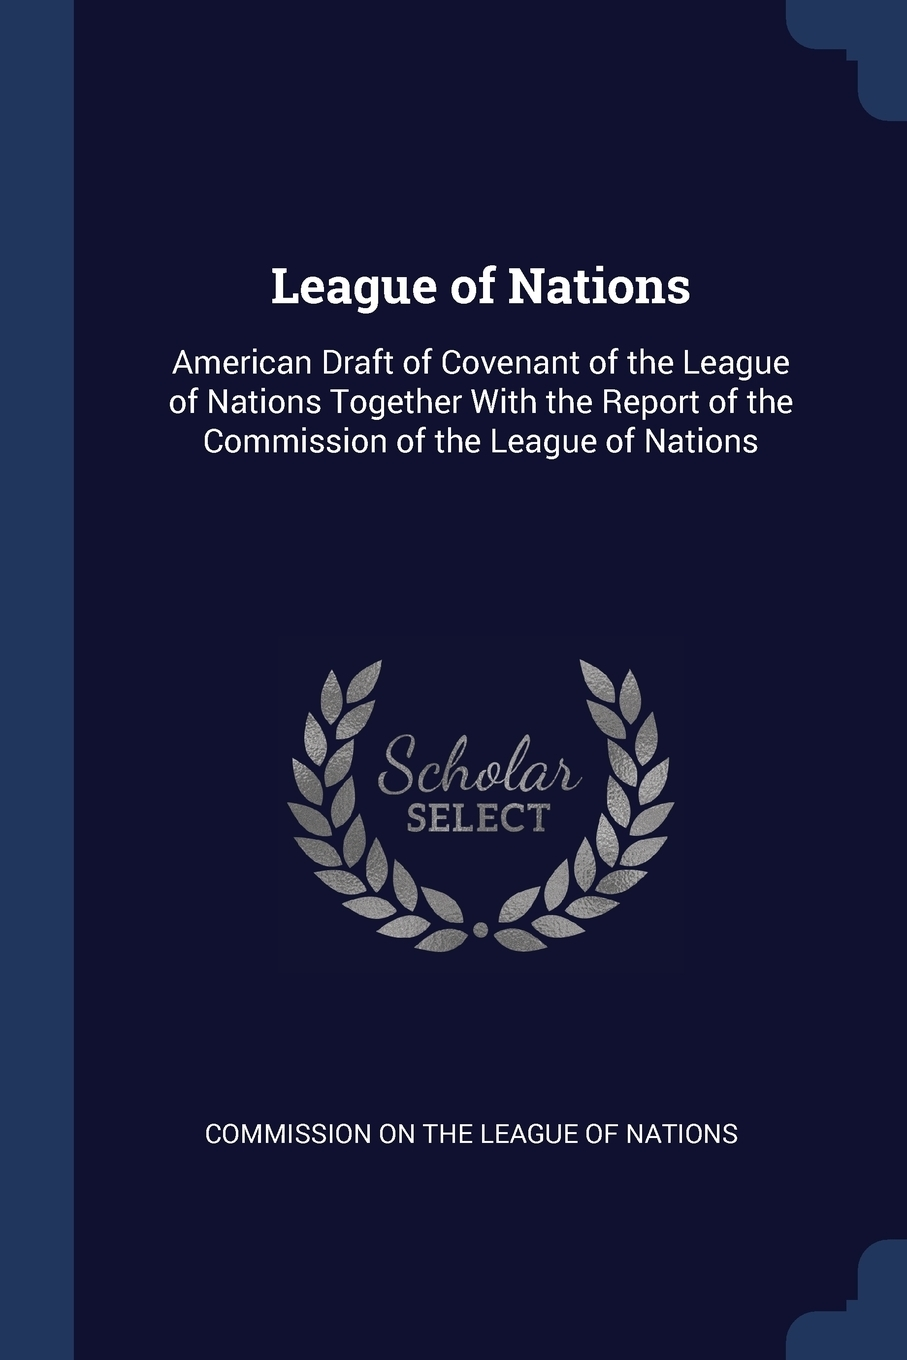 League of Nations. American Draft of Covenant of the League of Nations Together With the Report of the Commission of the League of Nations.